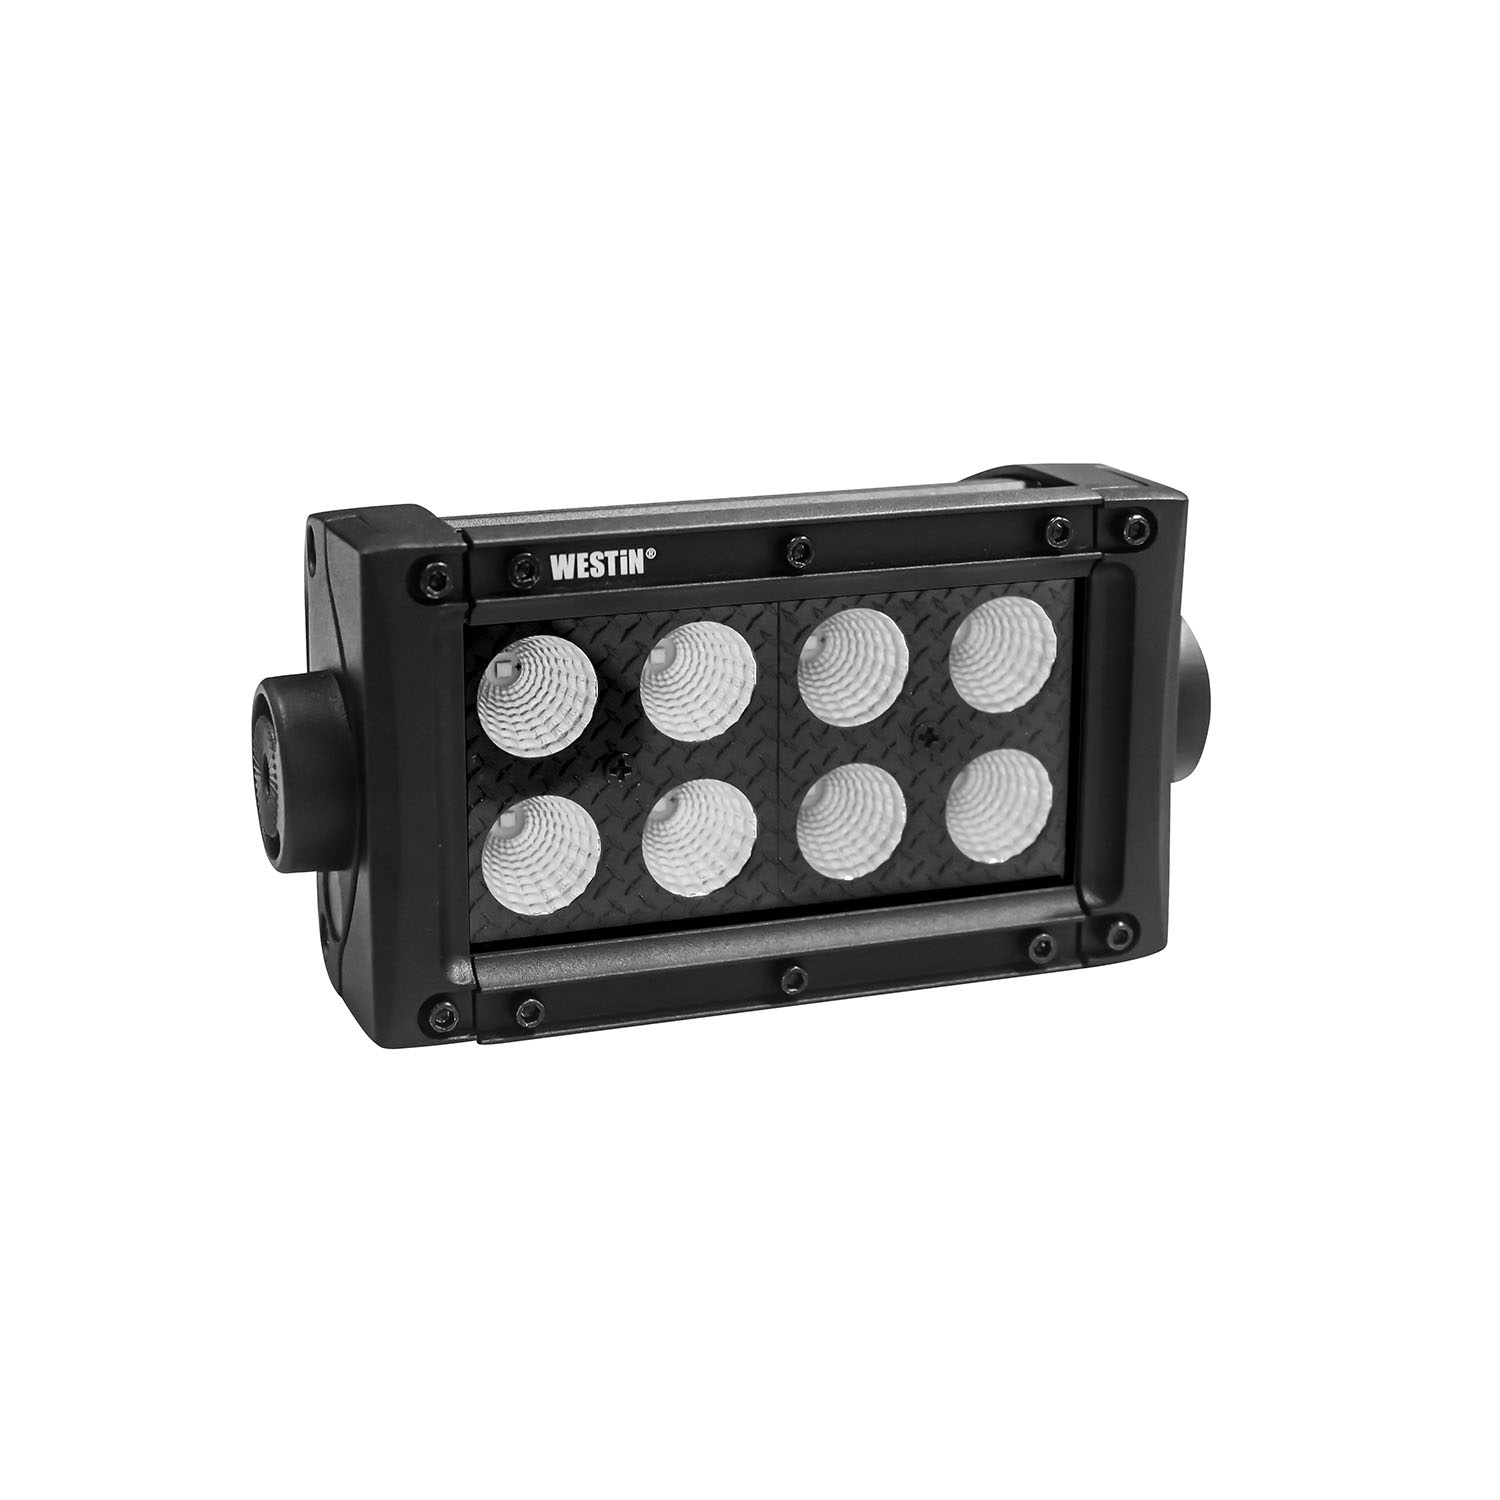 Westin 09-12212-8F B-FORCE LED Light Bar